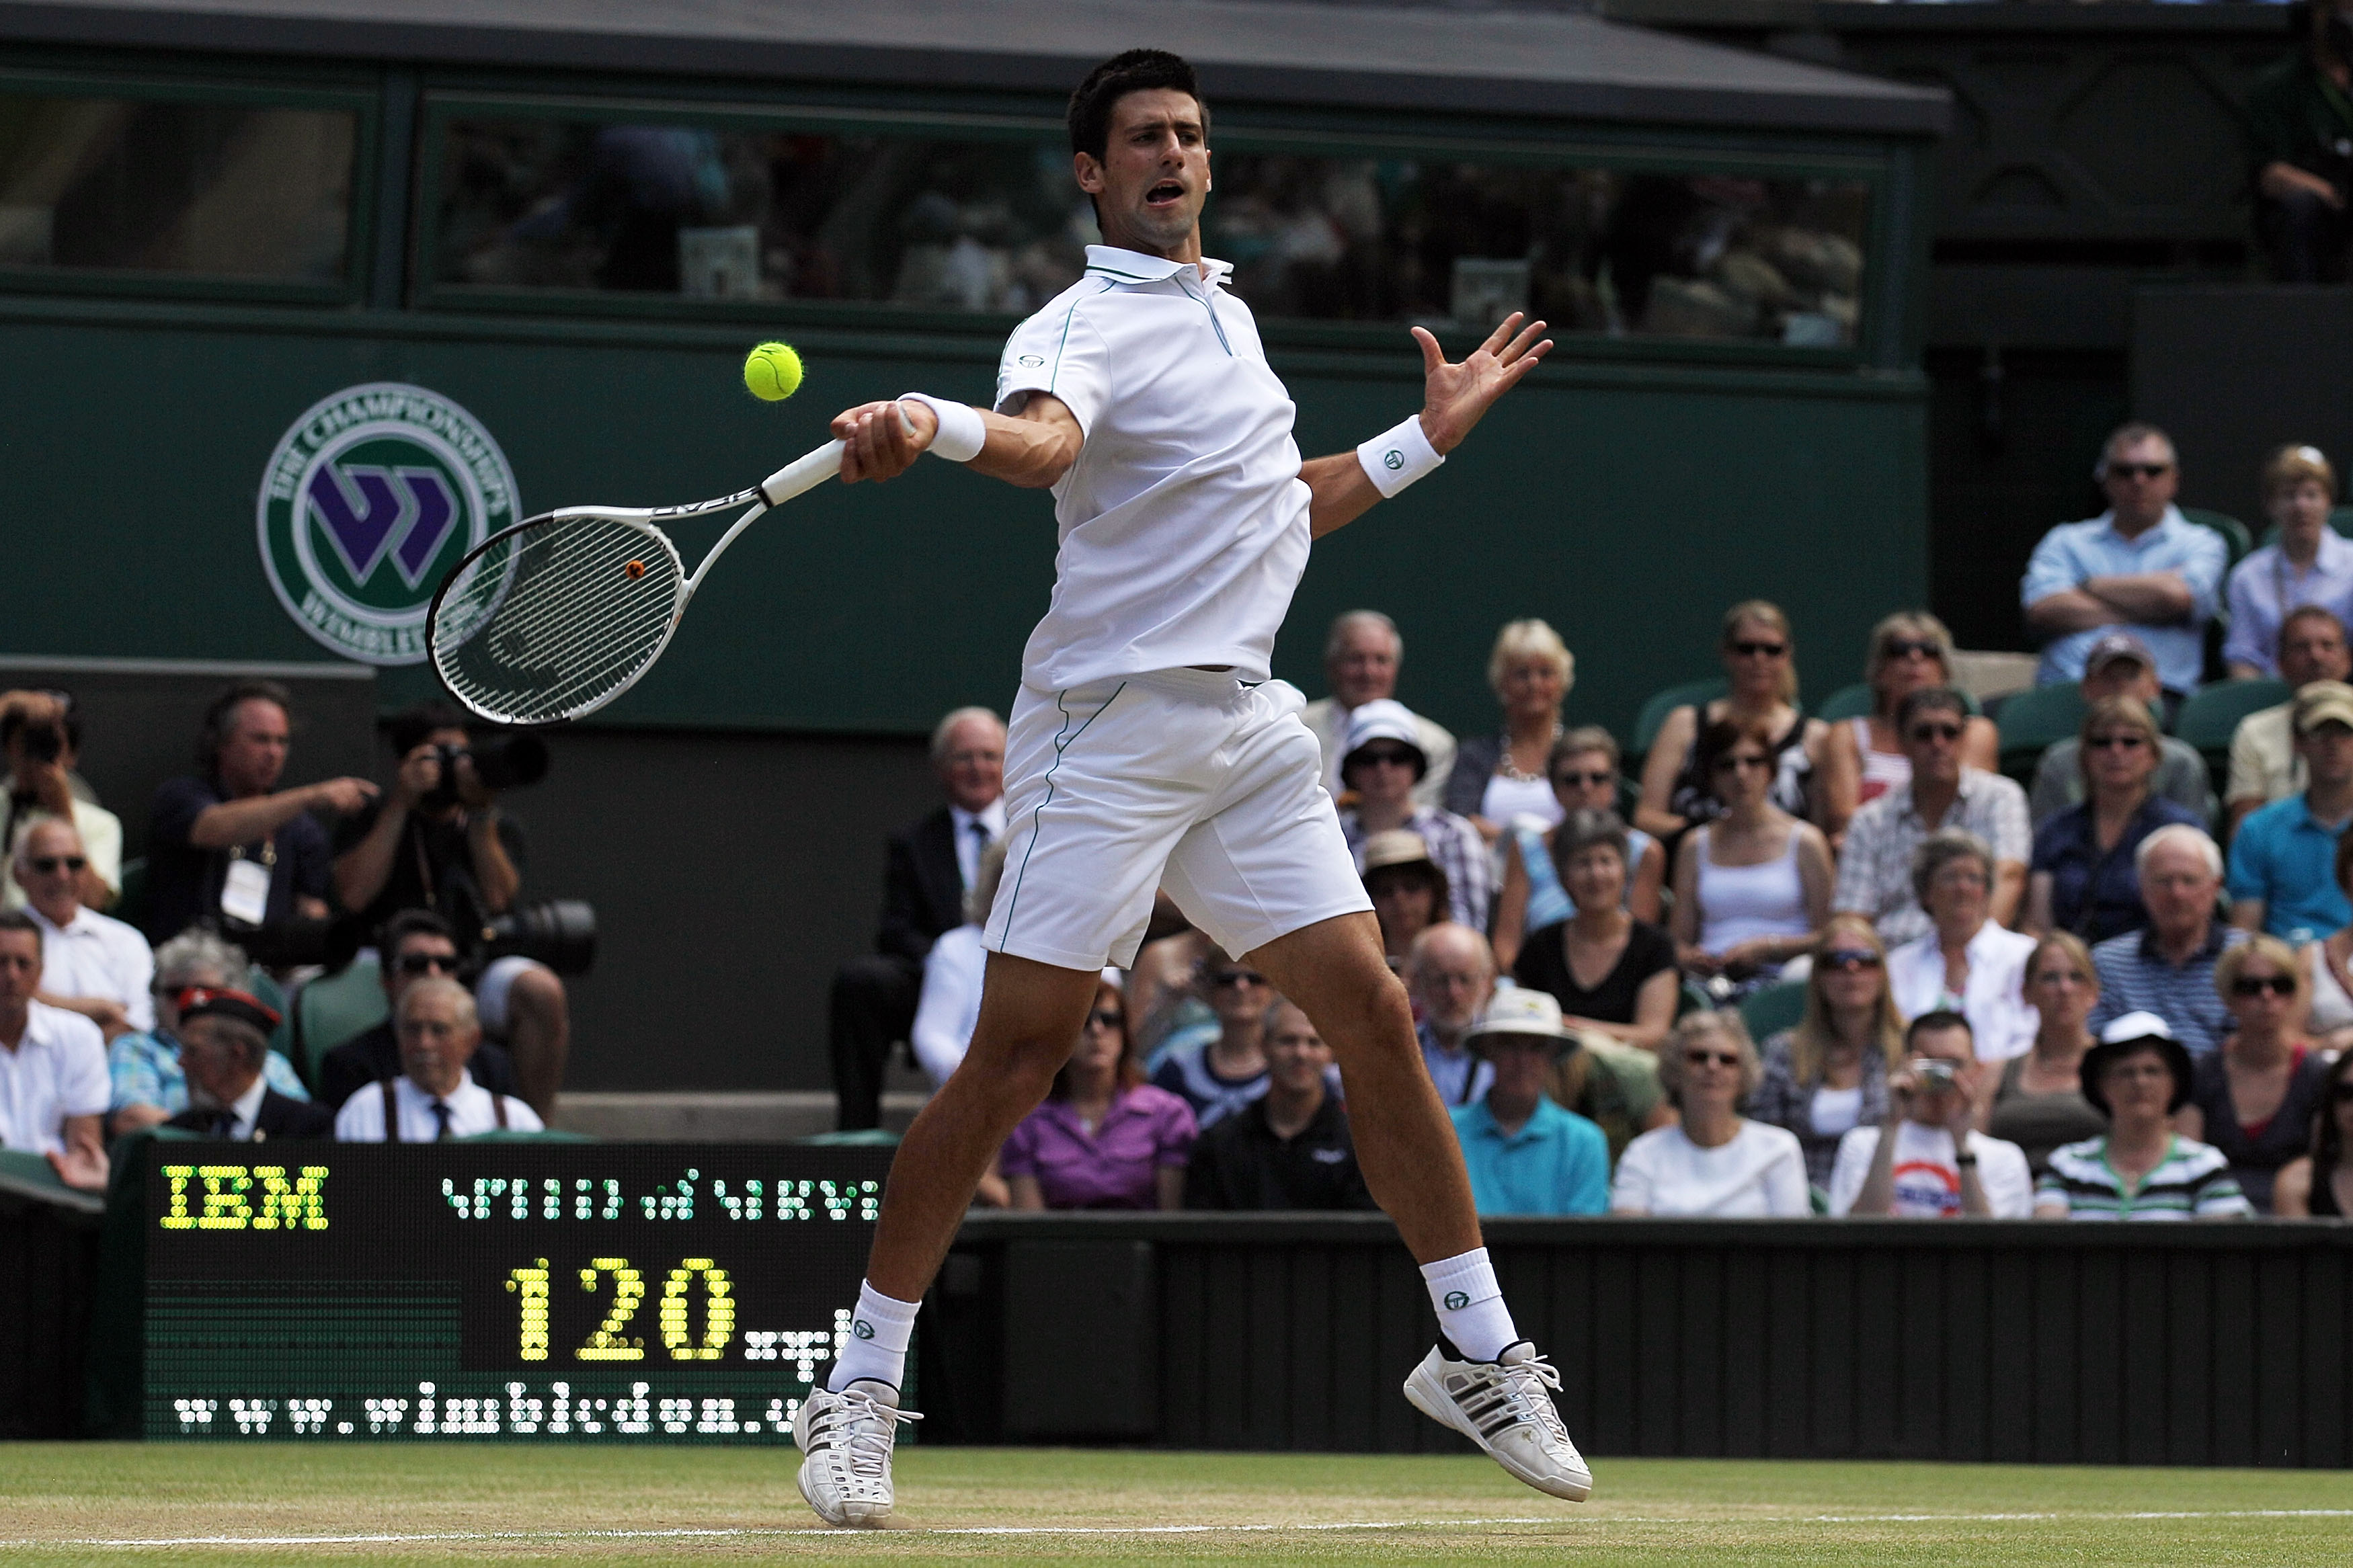 Adidas redeemed itself with Novak's all-white Wimbledon look.